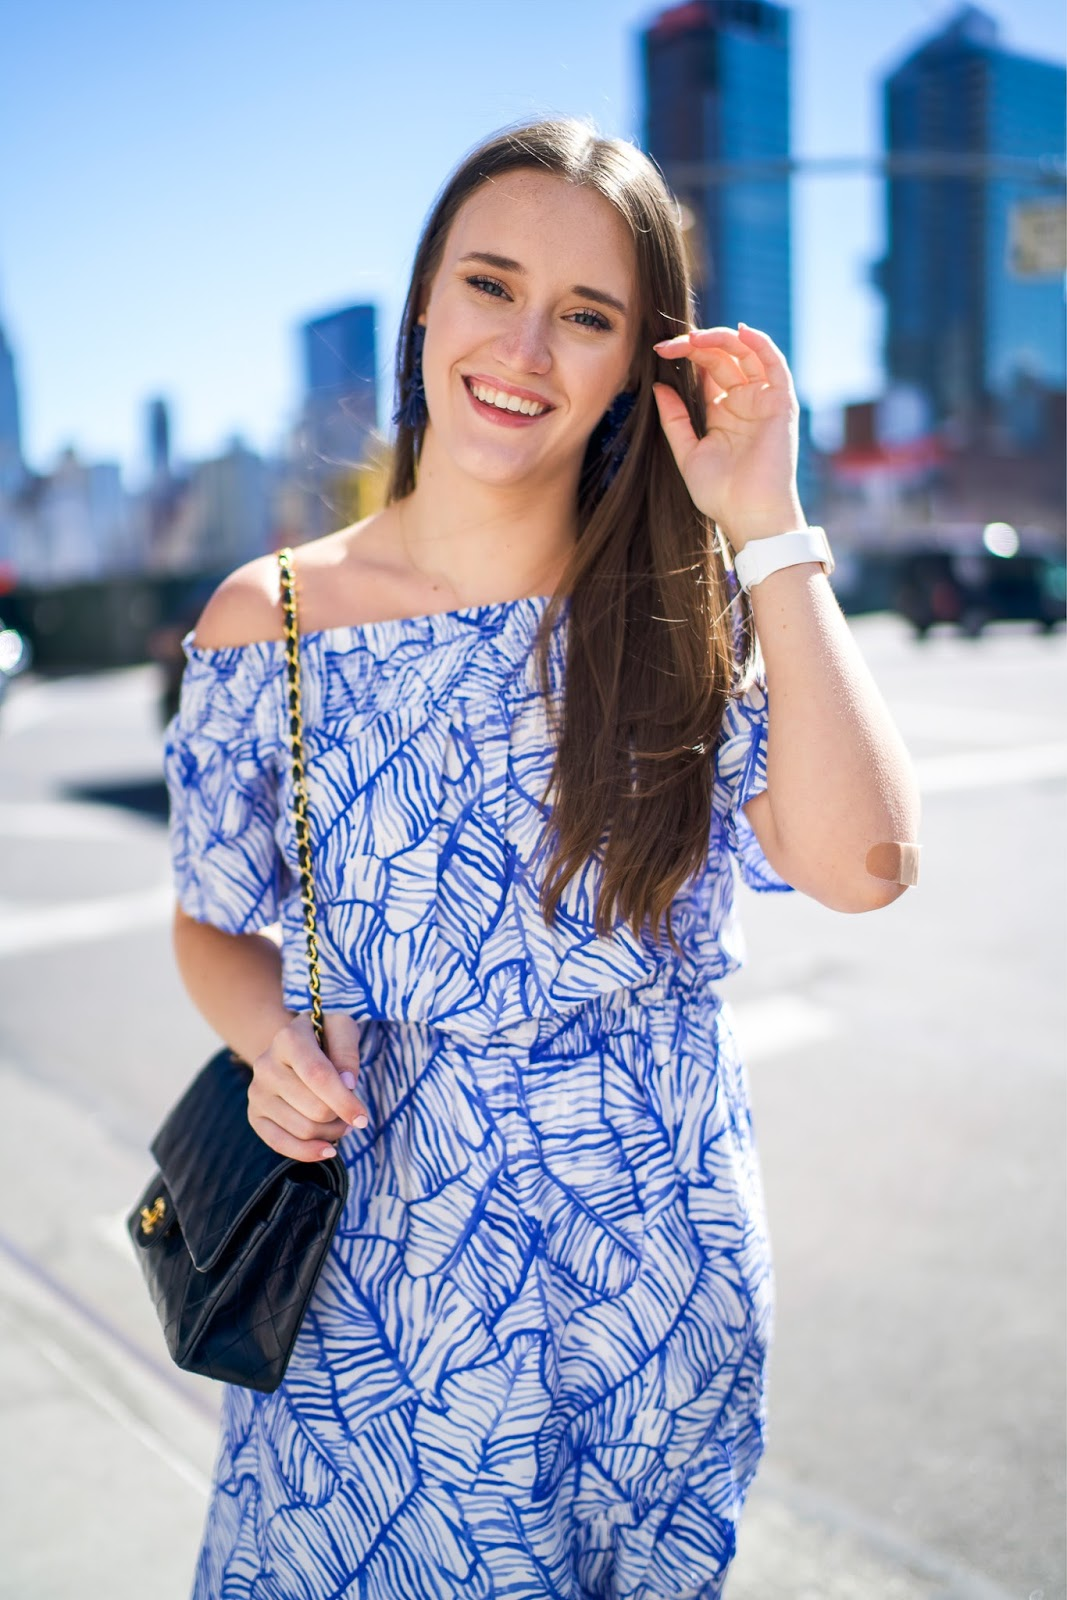 Banana Leaf Dress For Spring by popular New York fashion blogger Covering the Bases